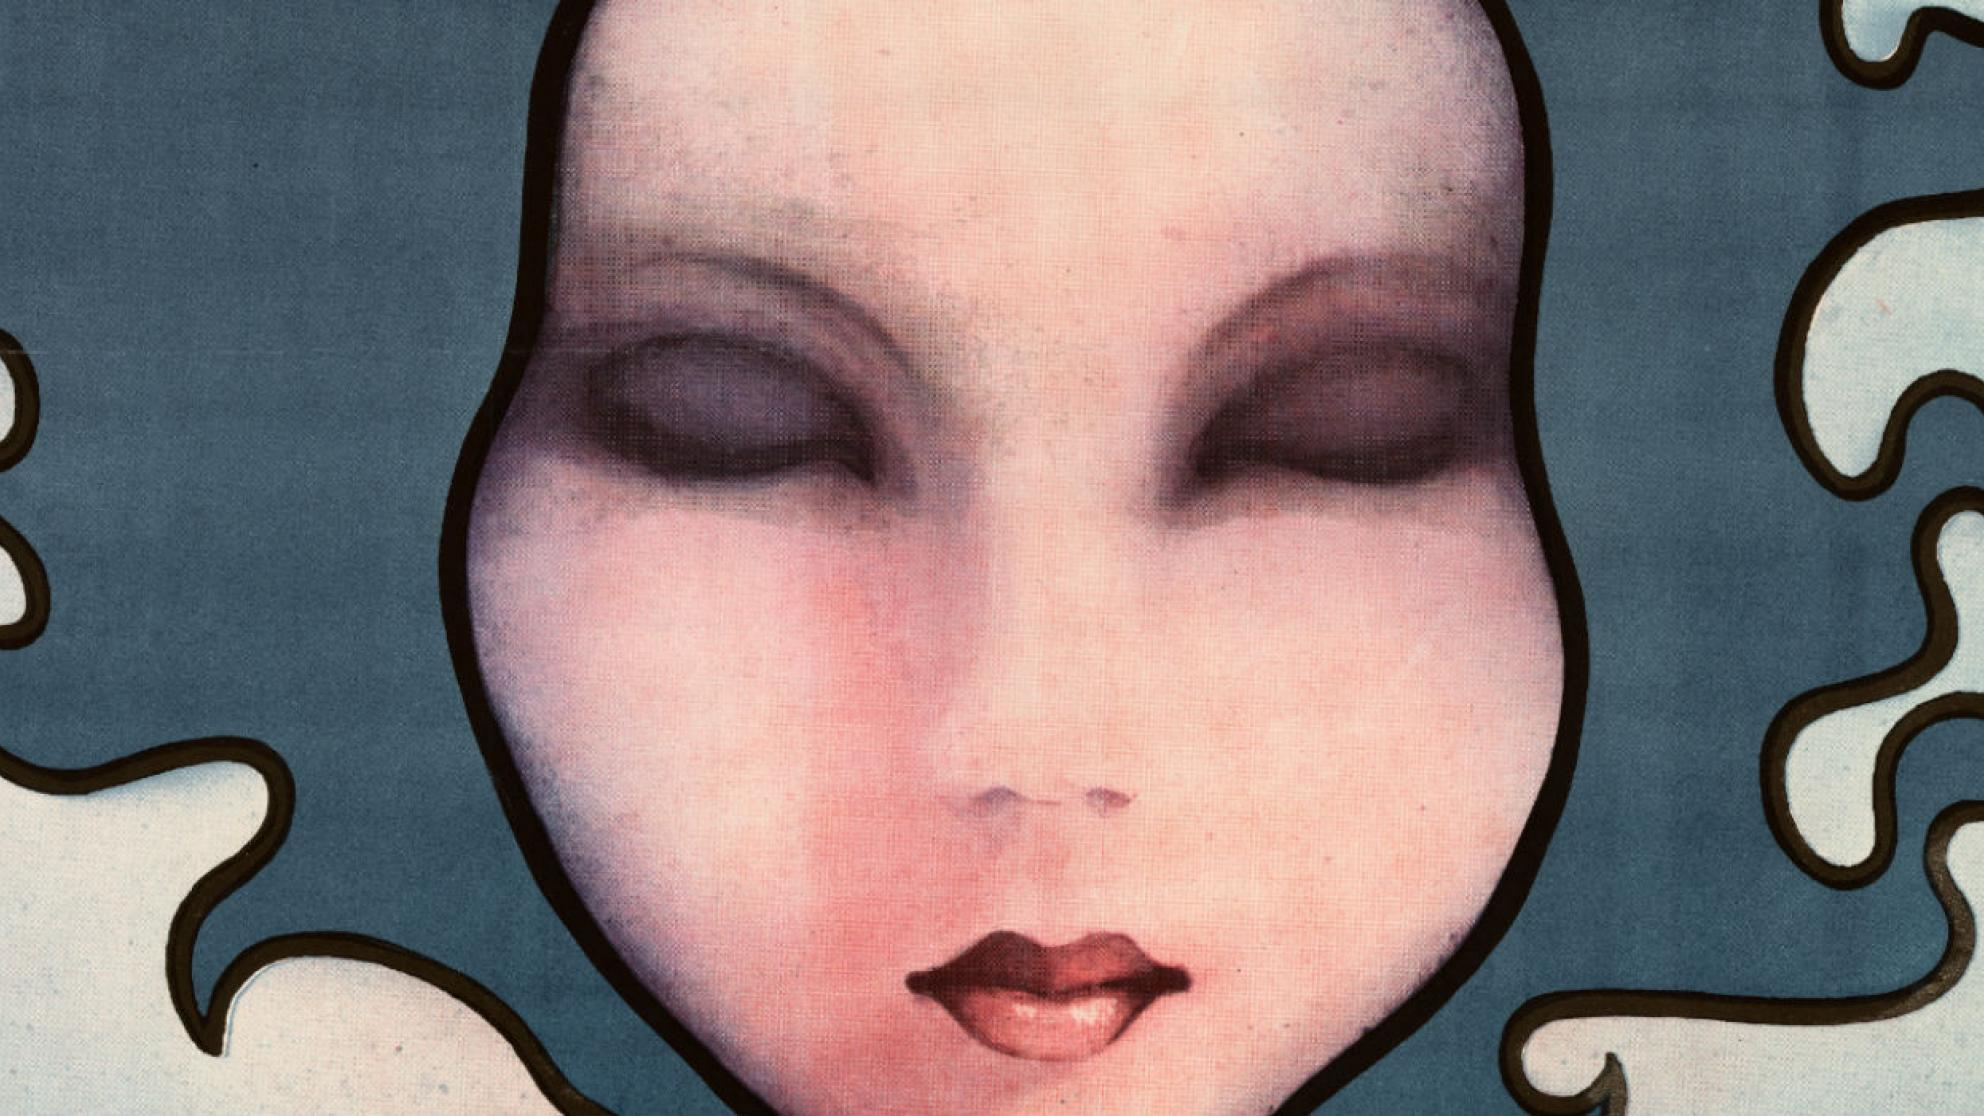 cropped Polish film poster for Picnic at Hanging Rock showing girls face with eyes closed